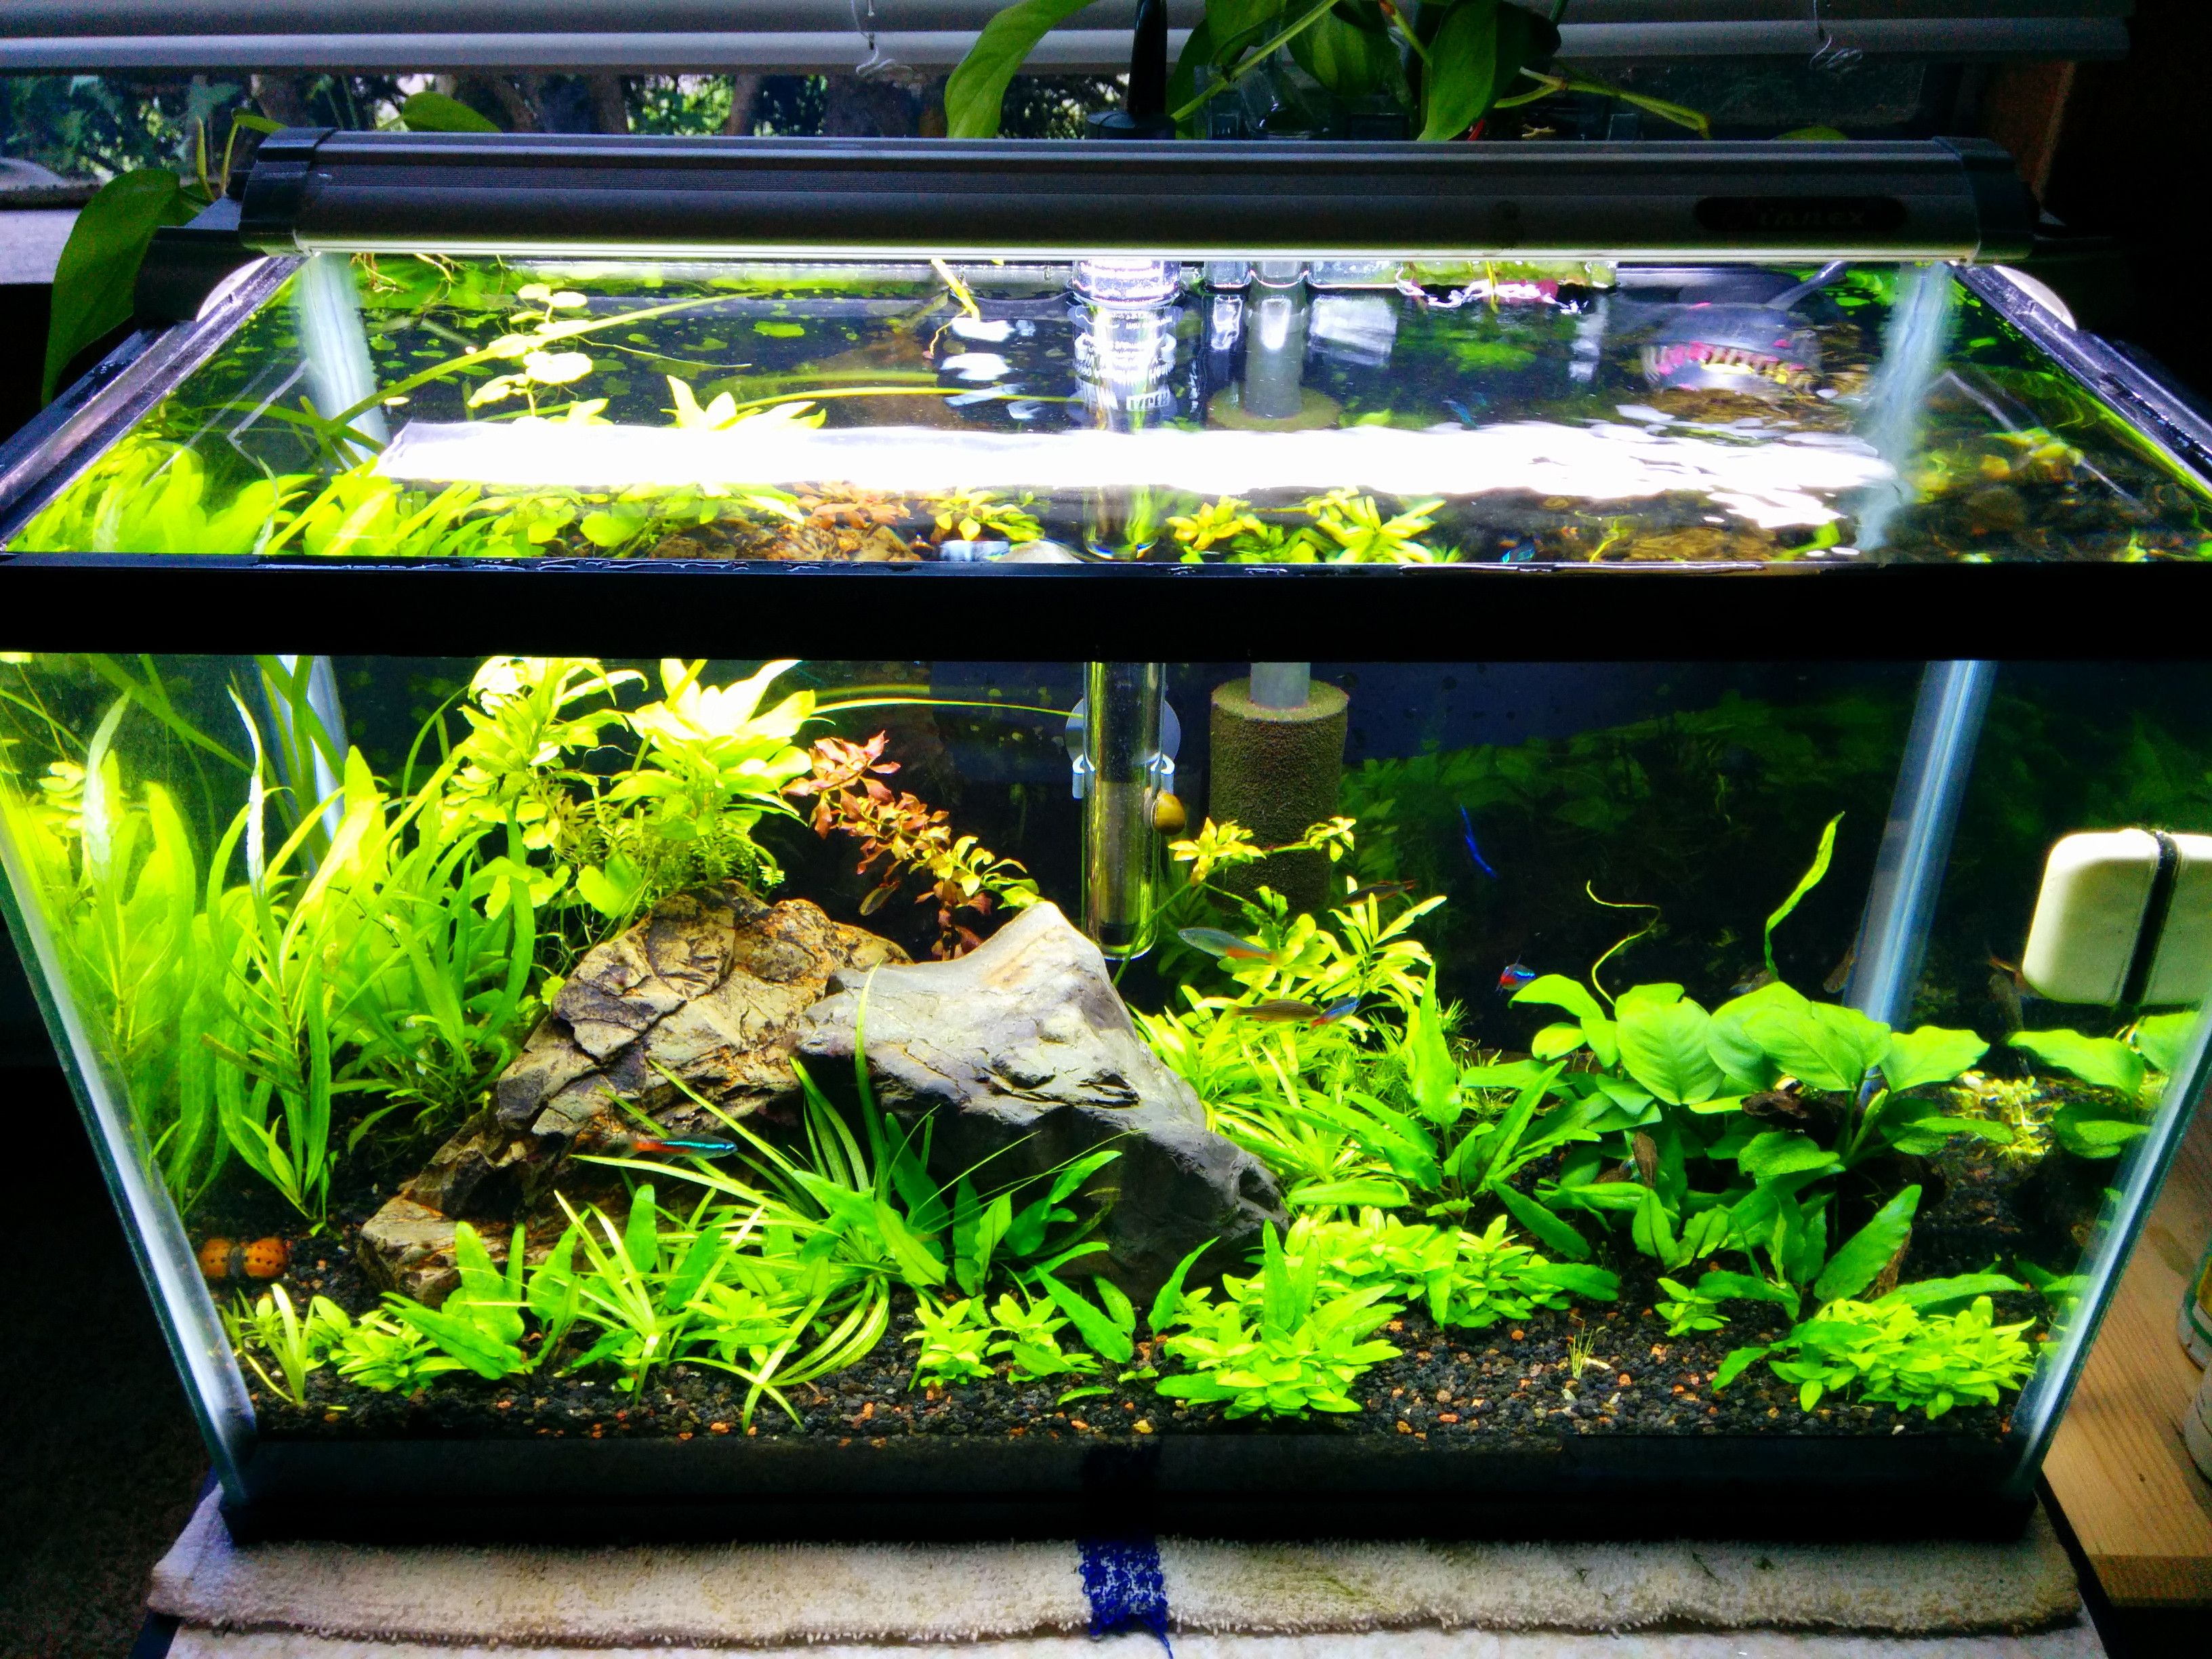 Fish tank heater 10 gallon - 10 Gallon Planted Over A Year With This Setup 10 Gallon Fish Tankbetta